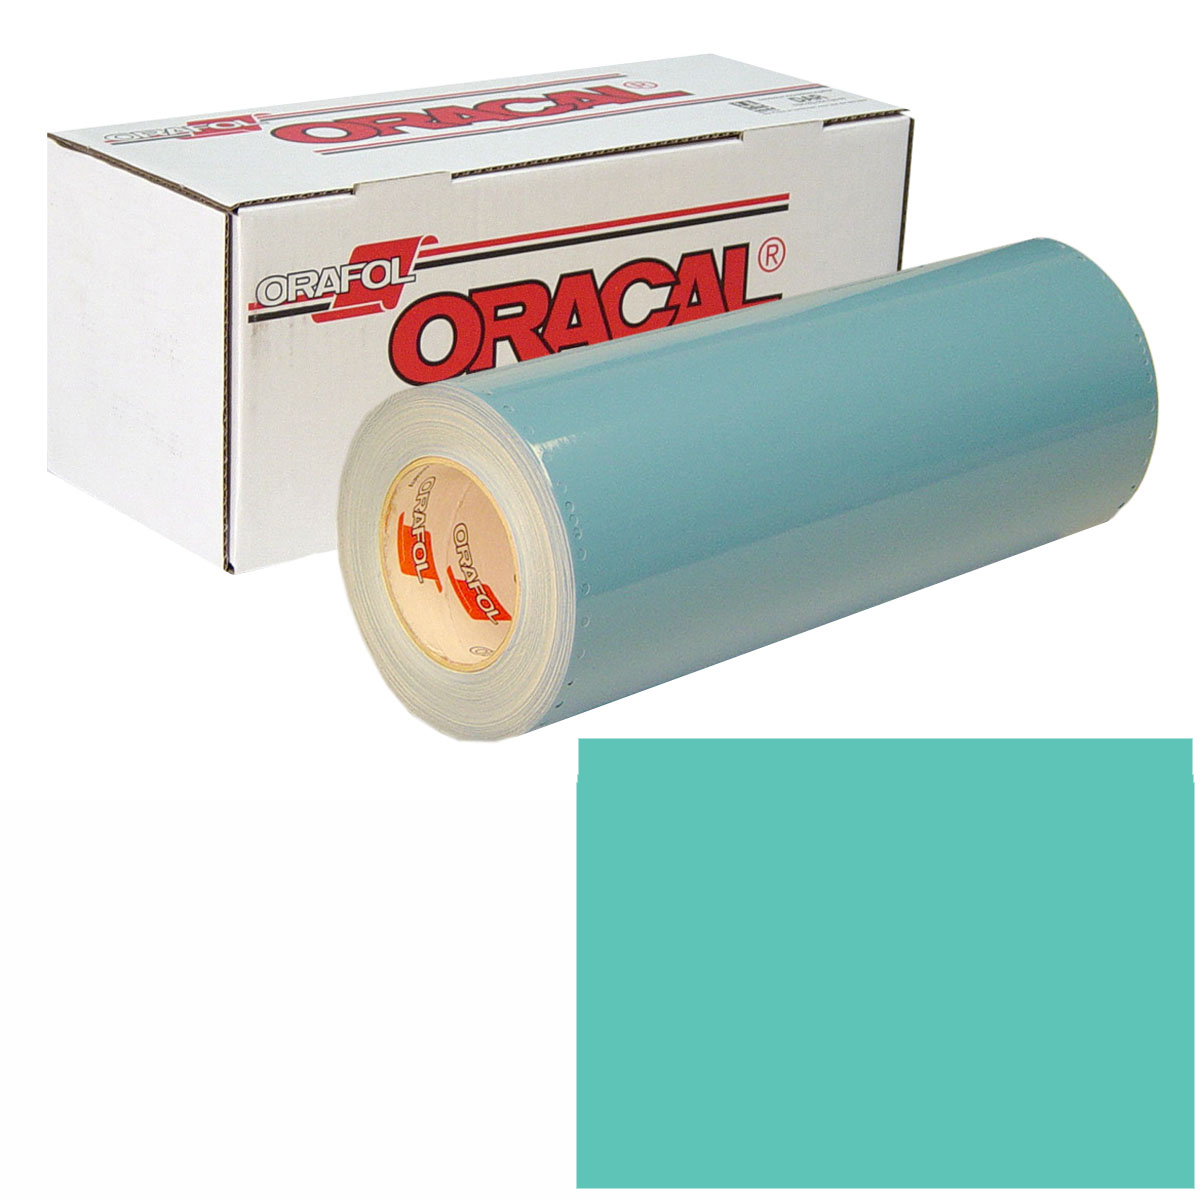 ORACAL 751 15in X 10yd 055 Mint